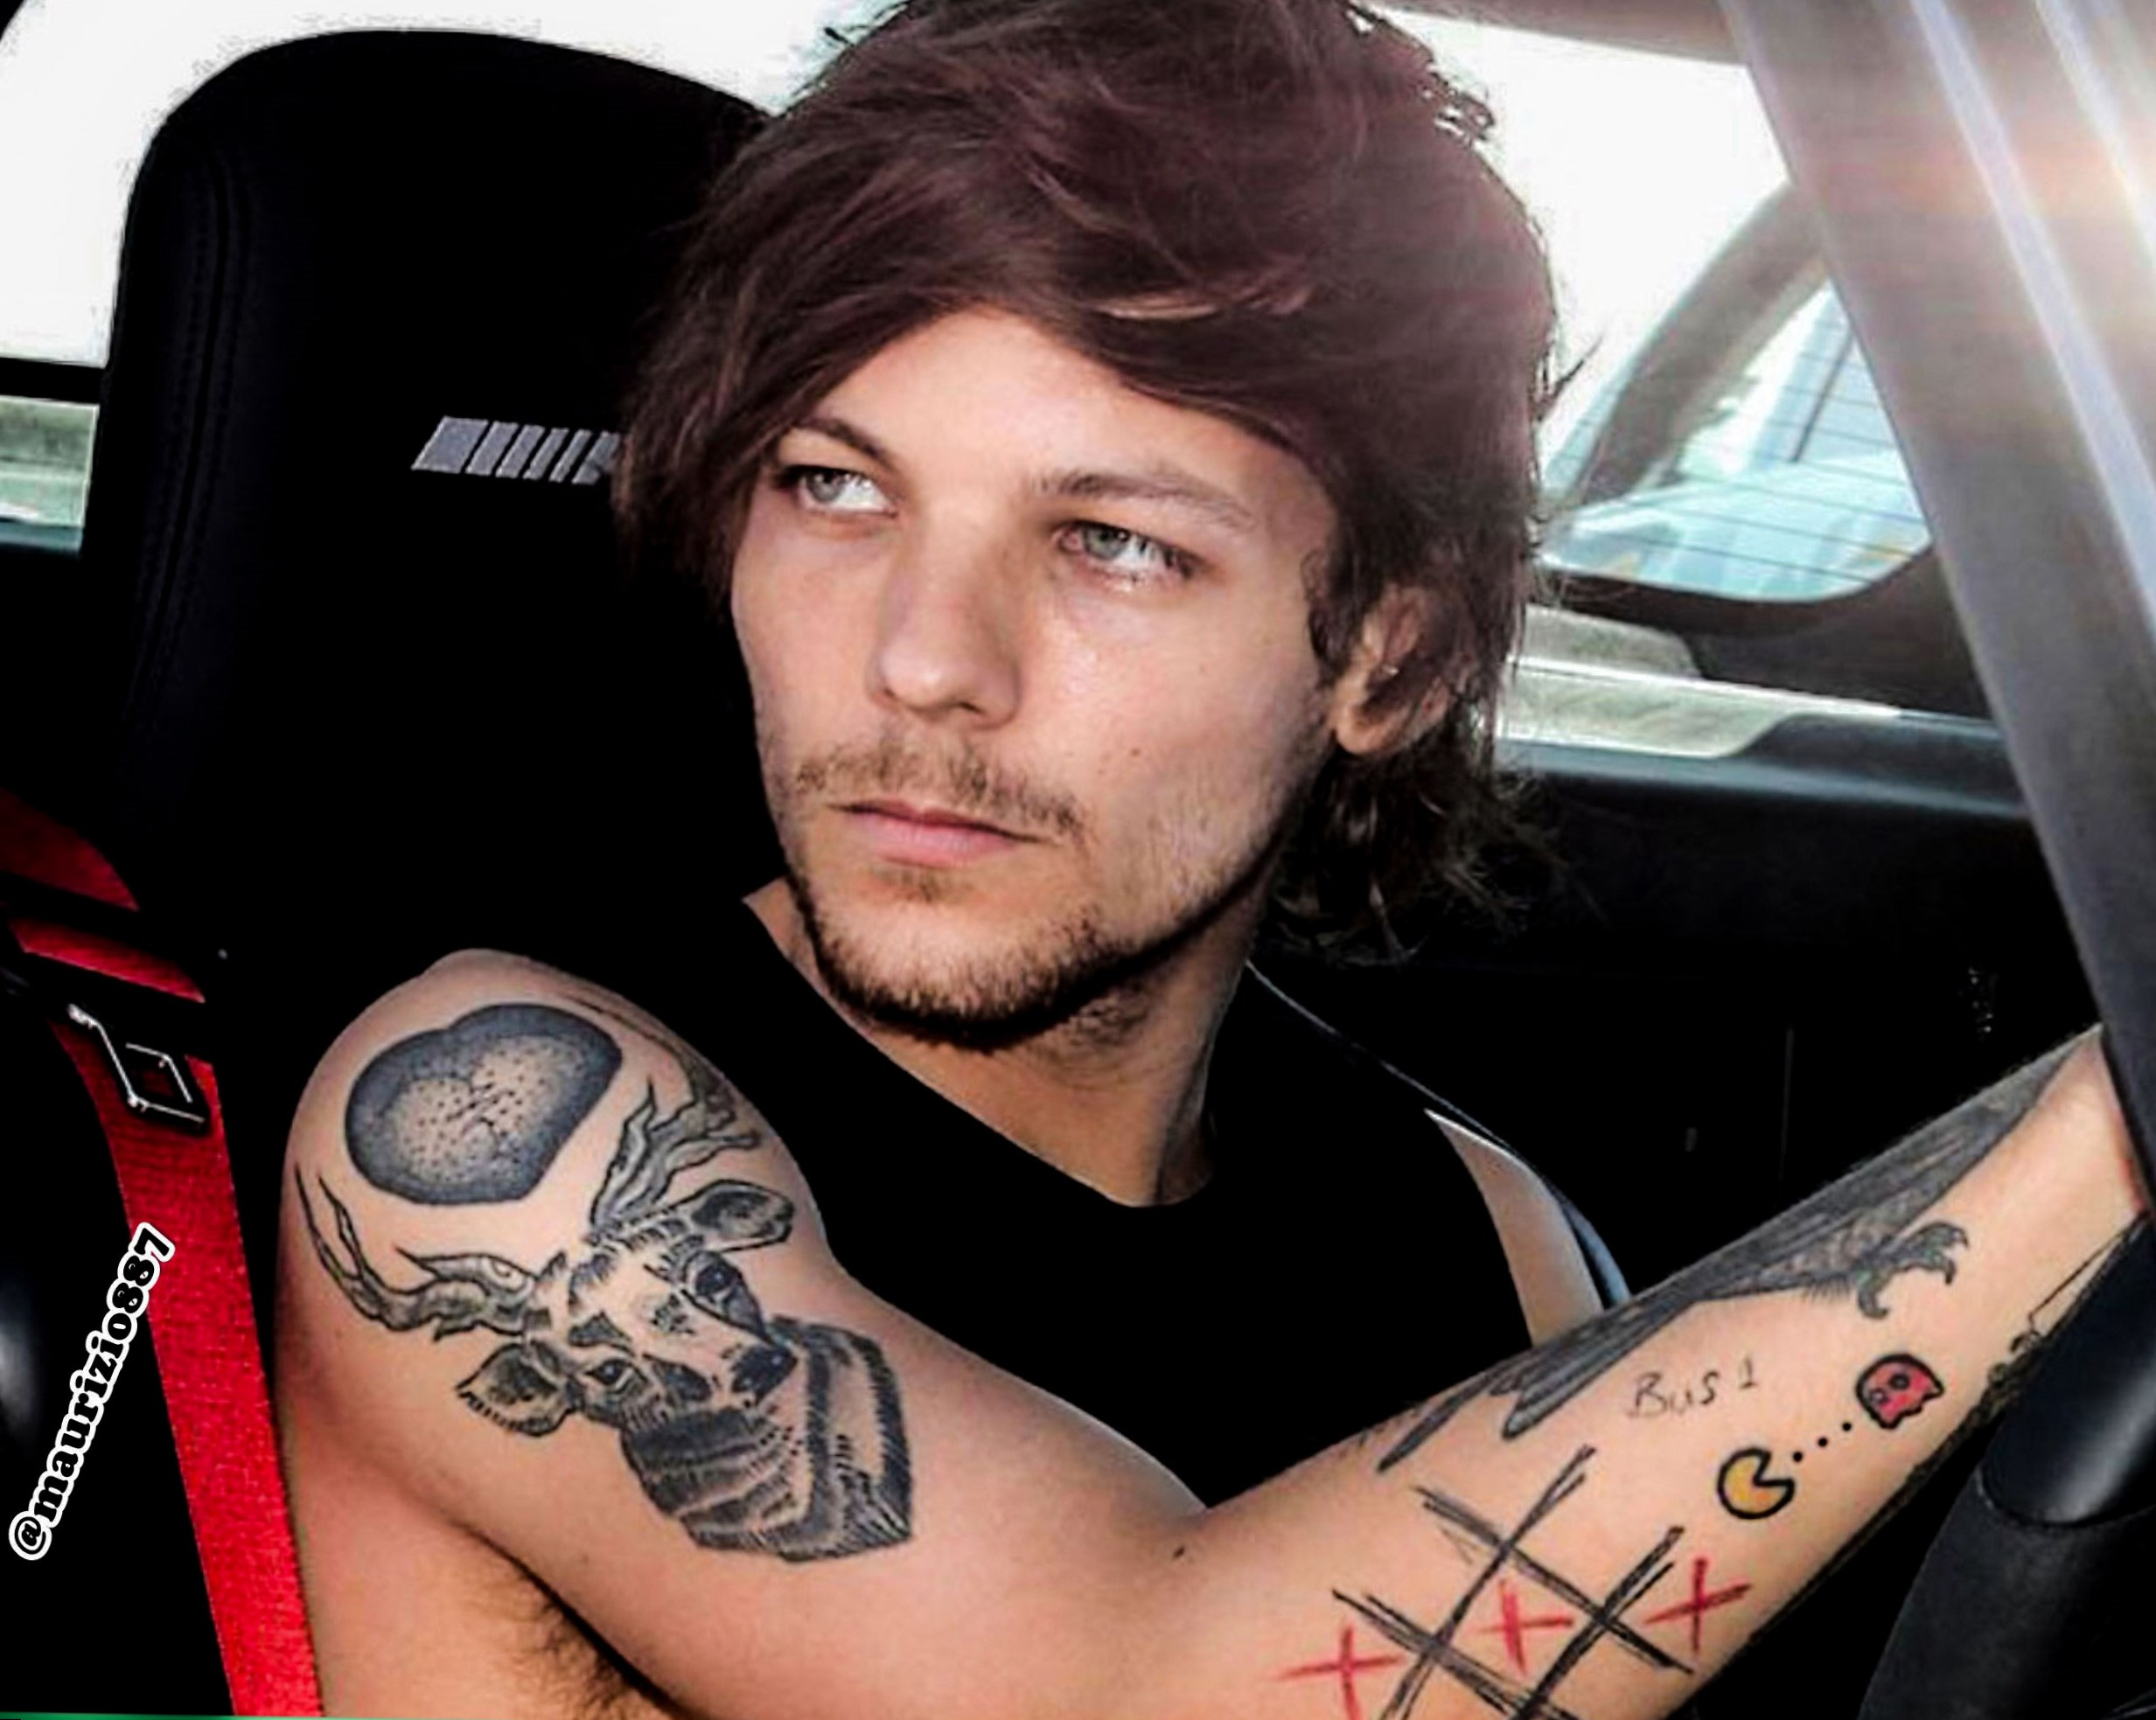 Louis Tomlinson Picture: Weight, Height And Age